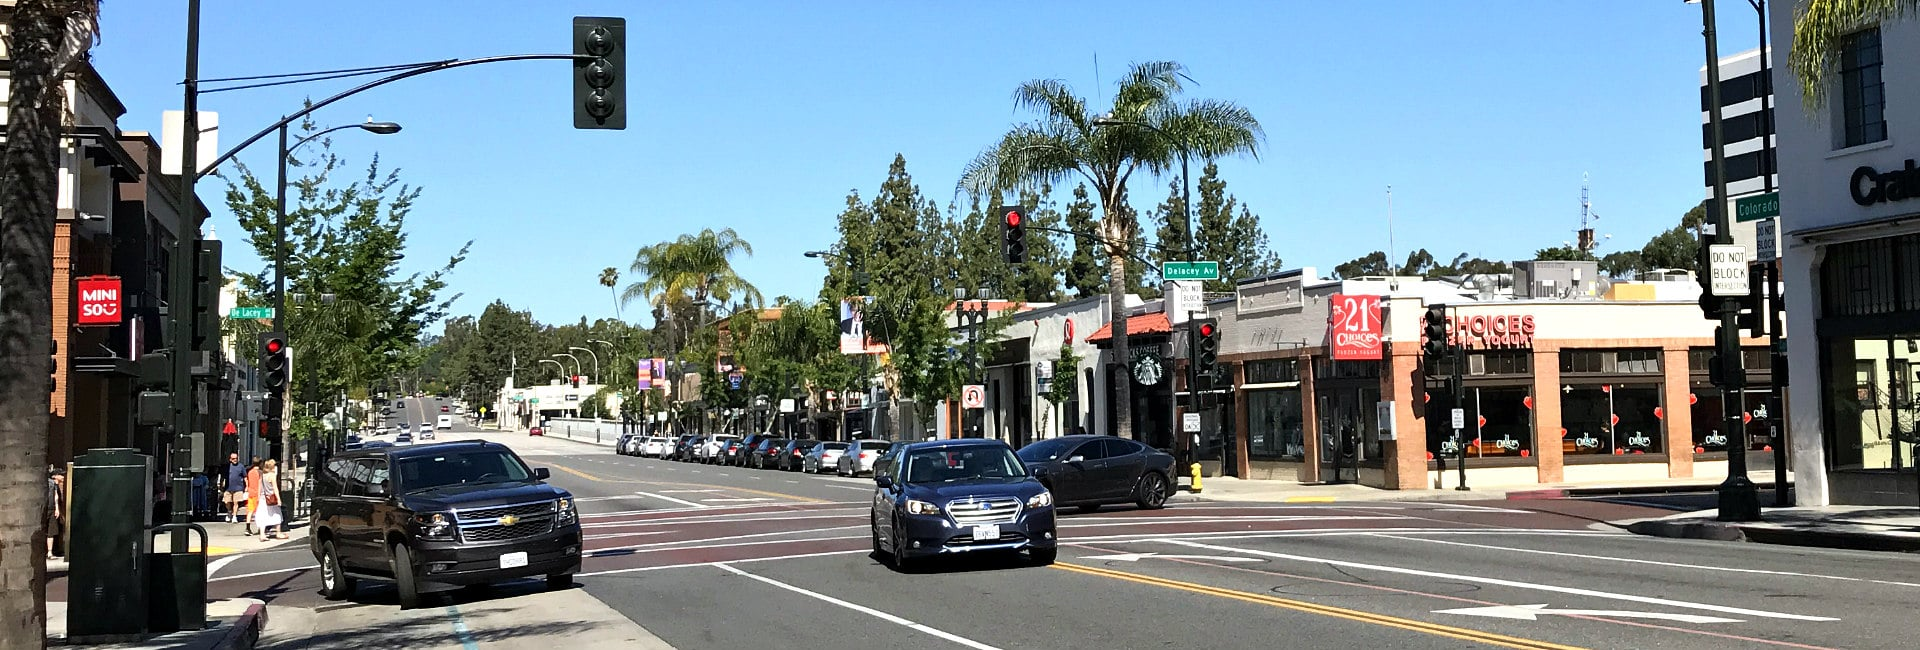 Colorado Blvd. Pasadena